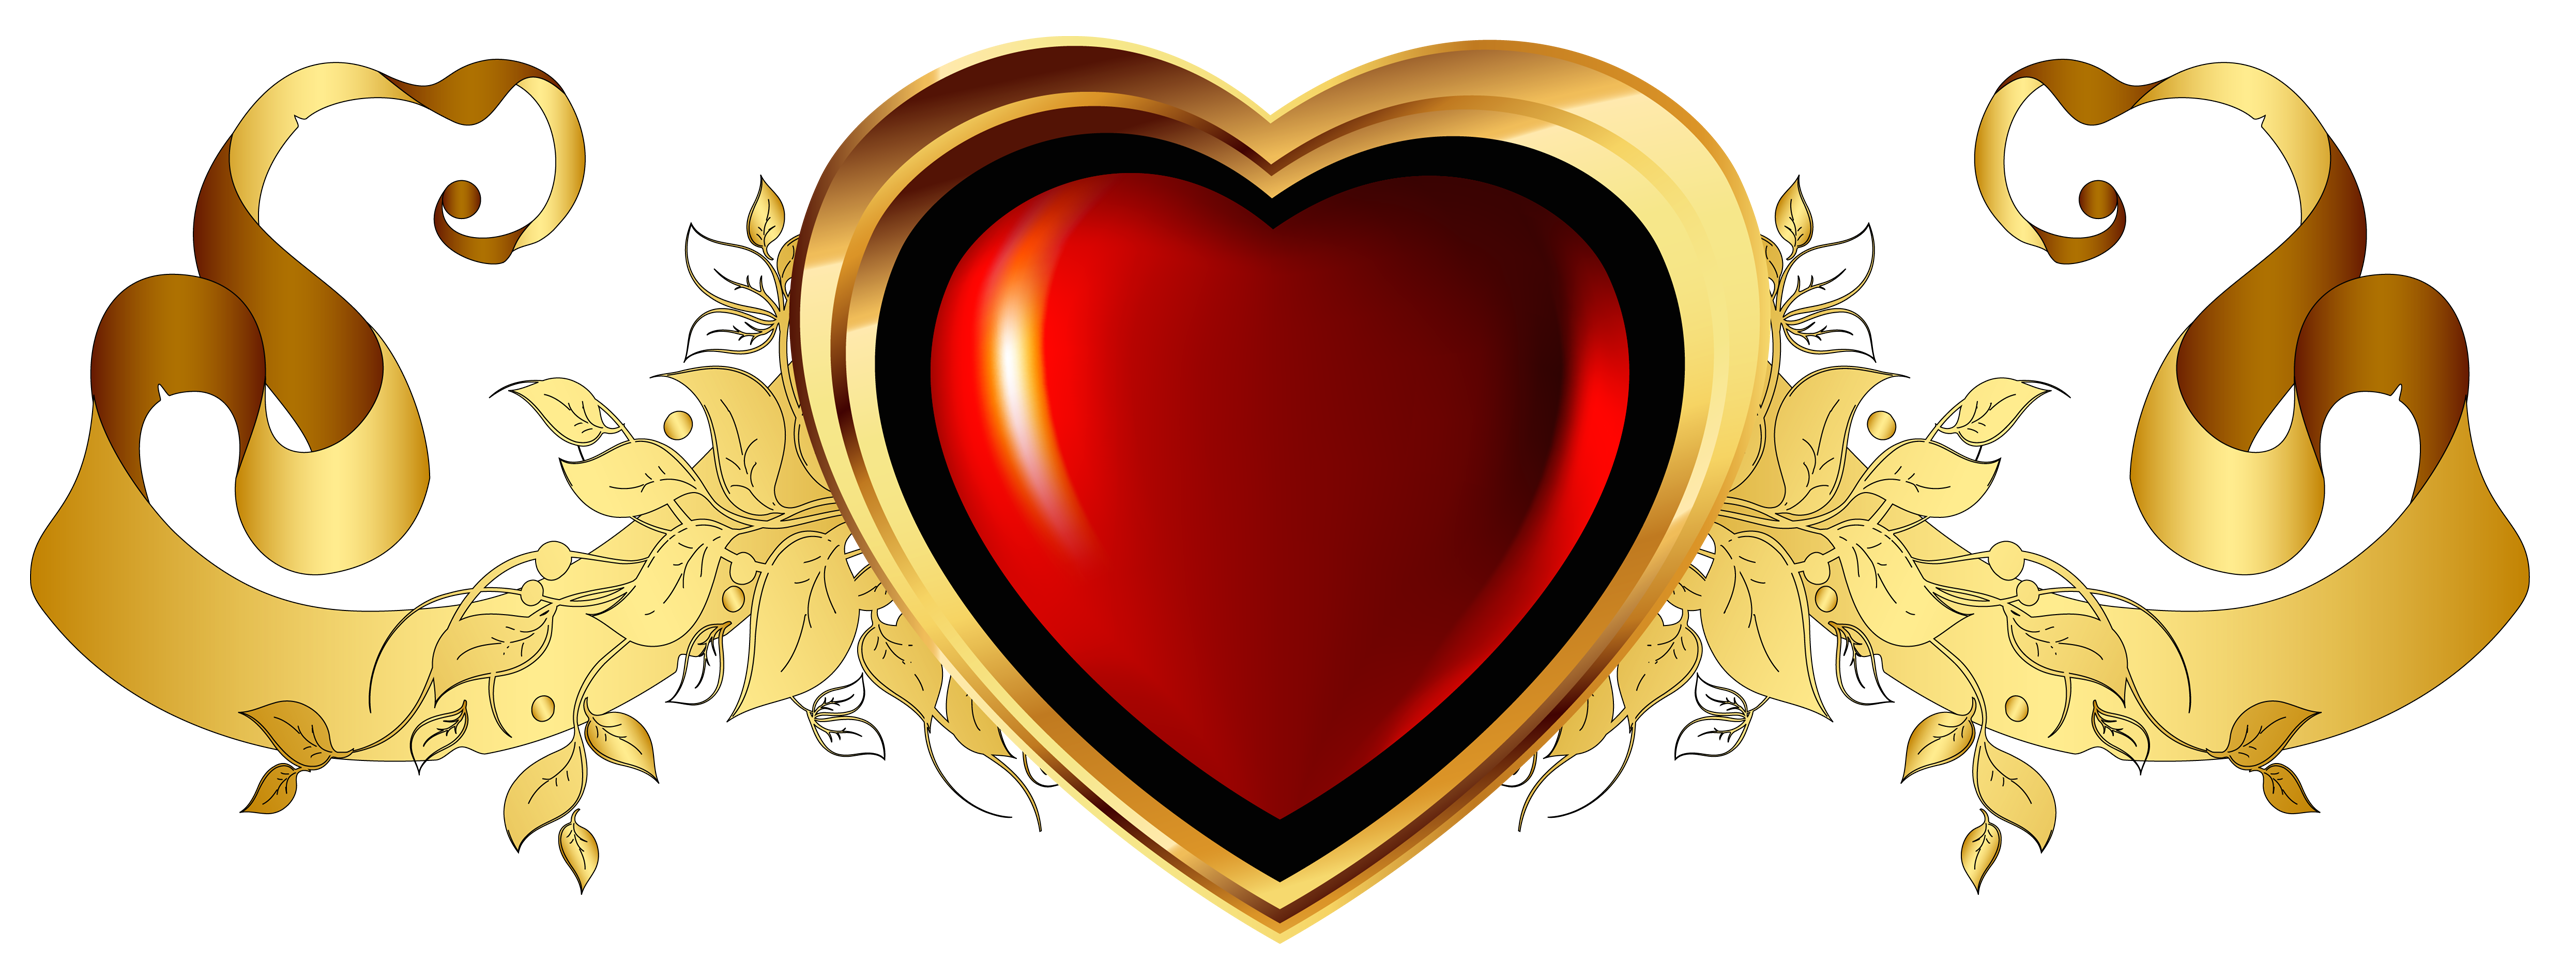 Heart peace sign and crown clipart png library Large Red Heart with Gold Banner Element Clipart | HEARTS & BOXES ... png library